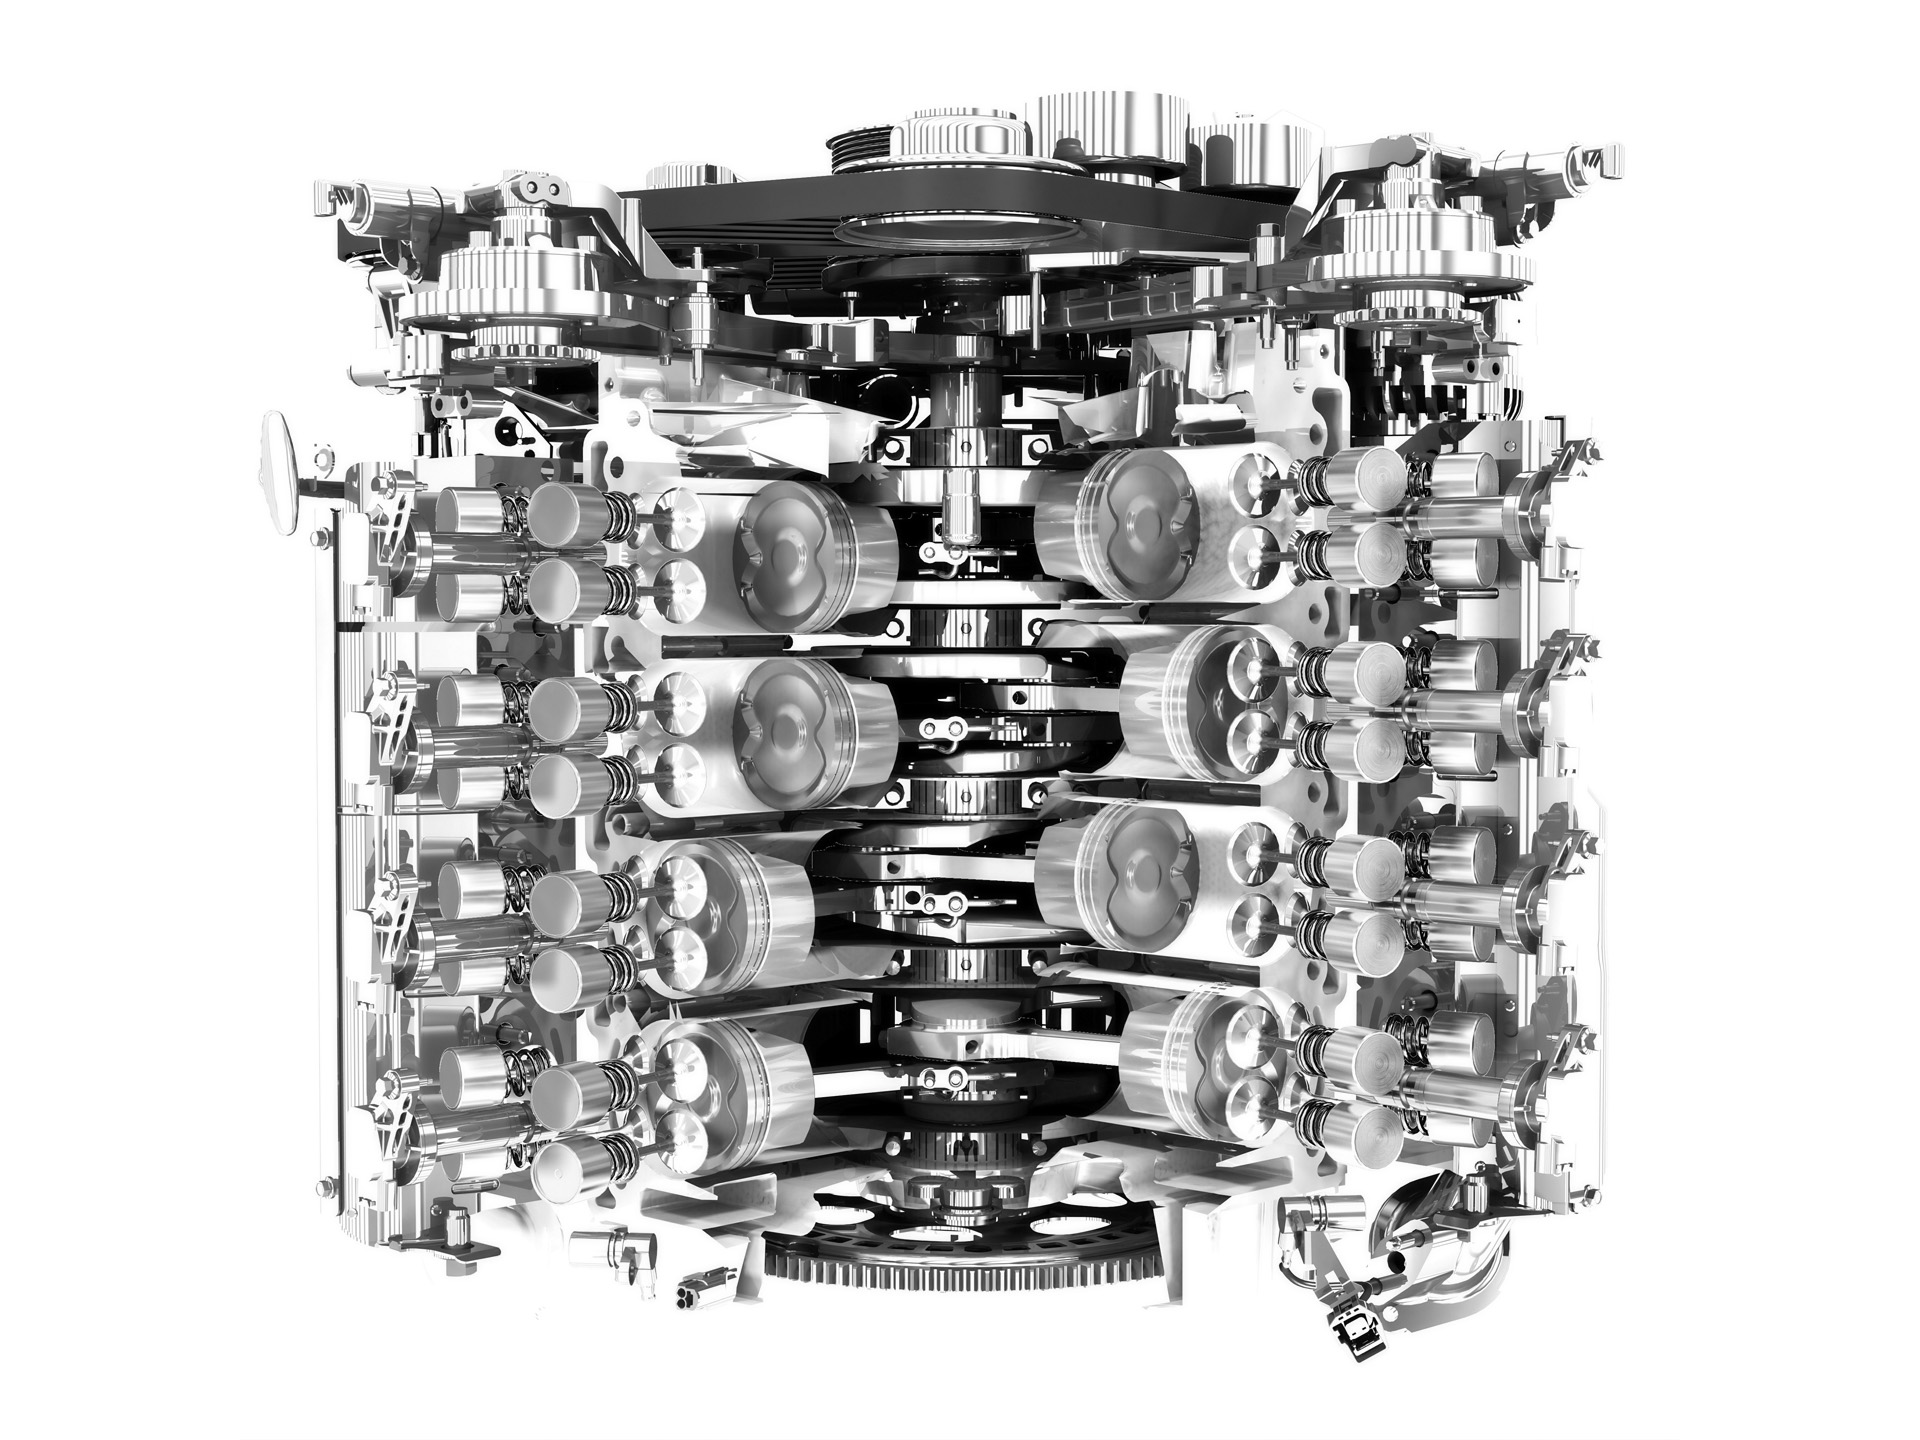 Sample P1105 Engine